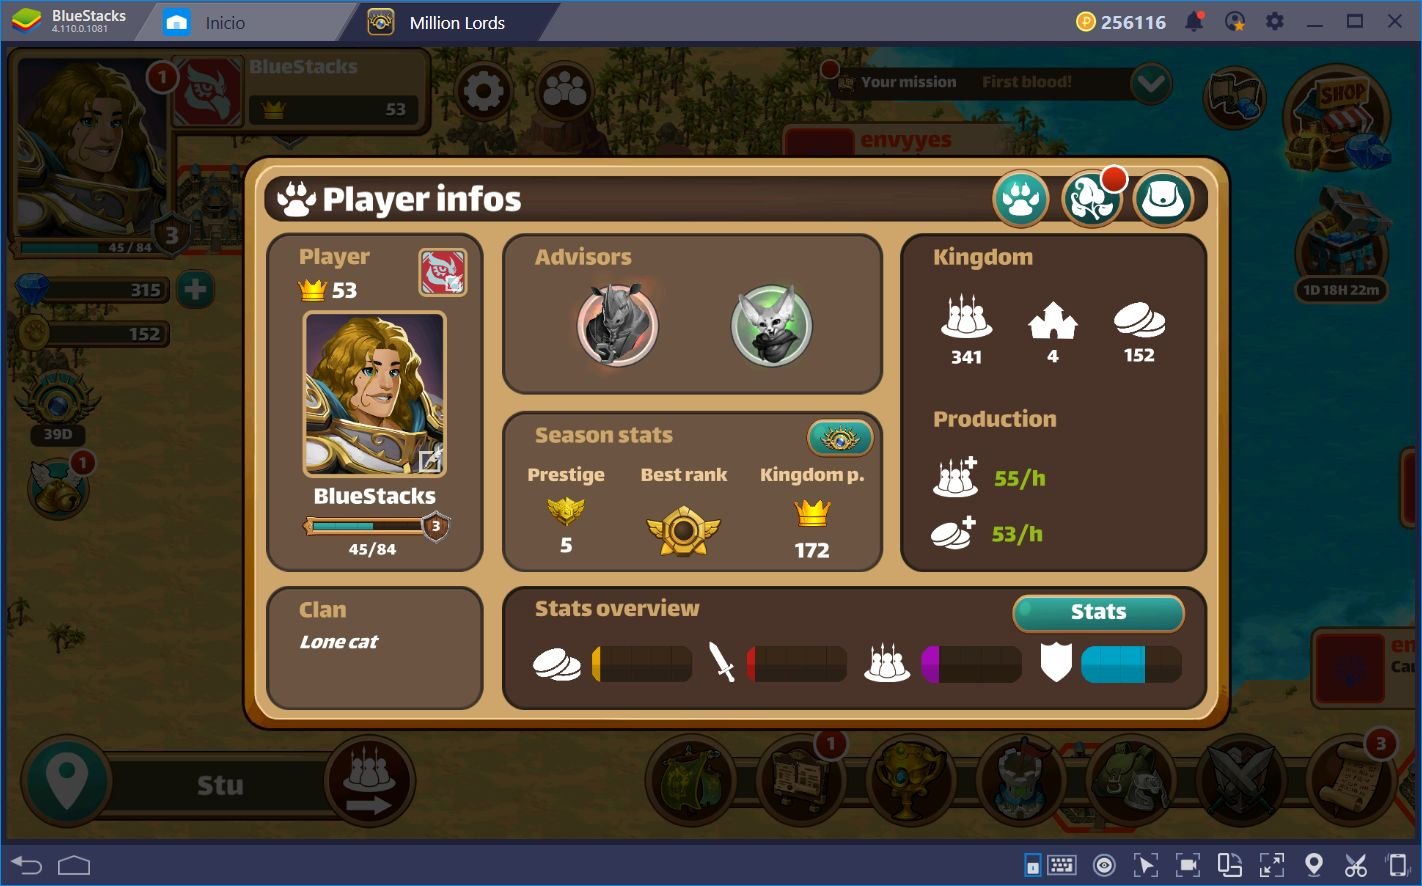 Conquer Your Foes: A Beginner's Guide to Million Lords on BlueStacks